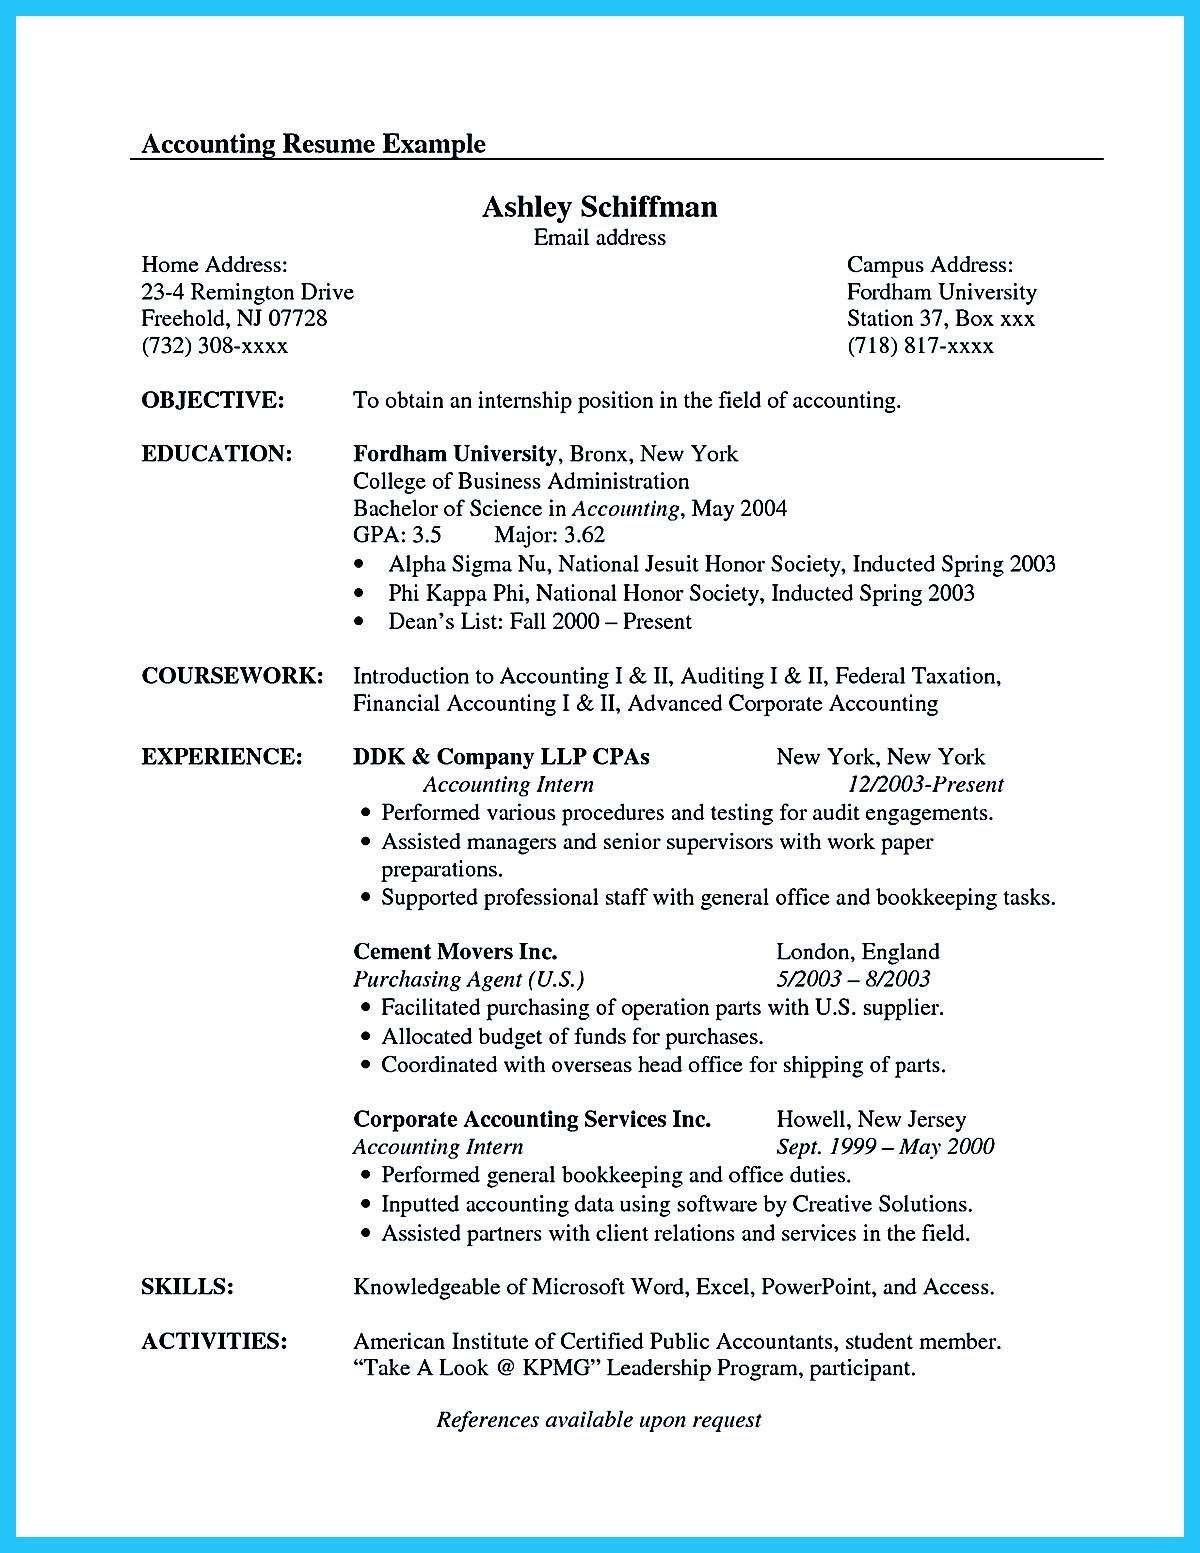 Accounting Student Resume Here Presents How The Of Clearly Made